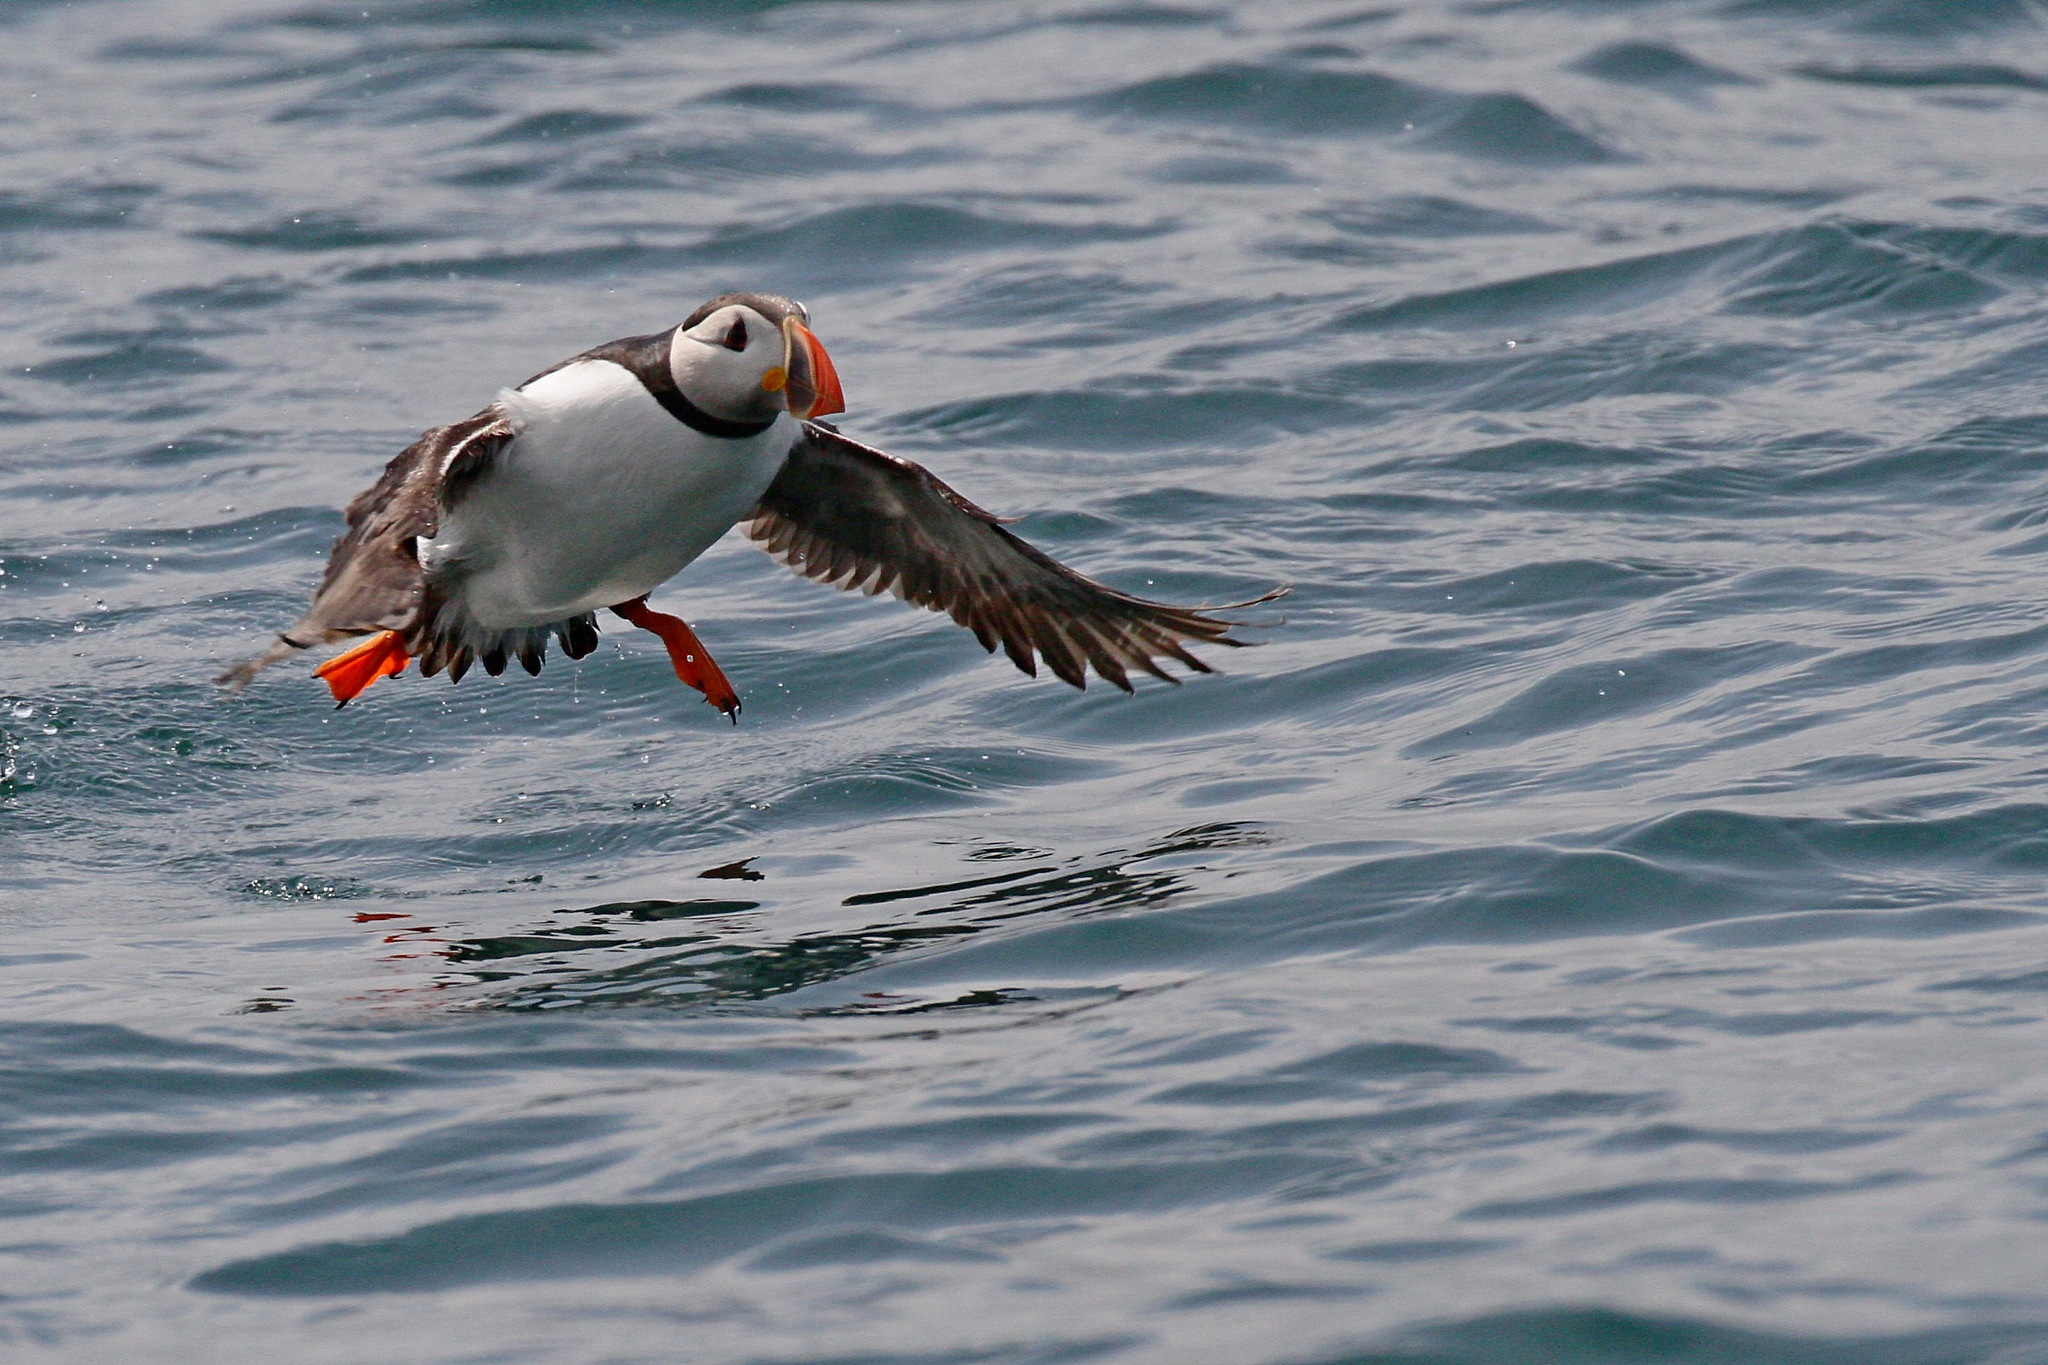 Puffin by Steve Rawlings